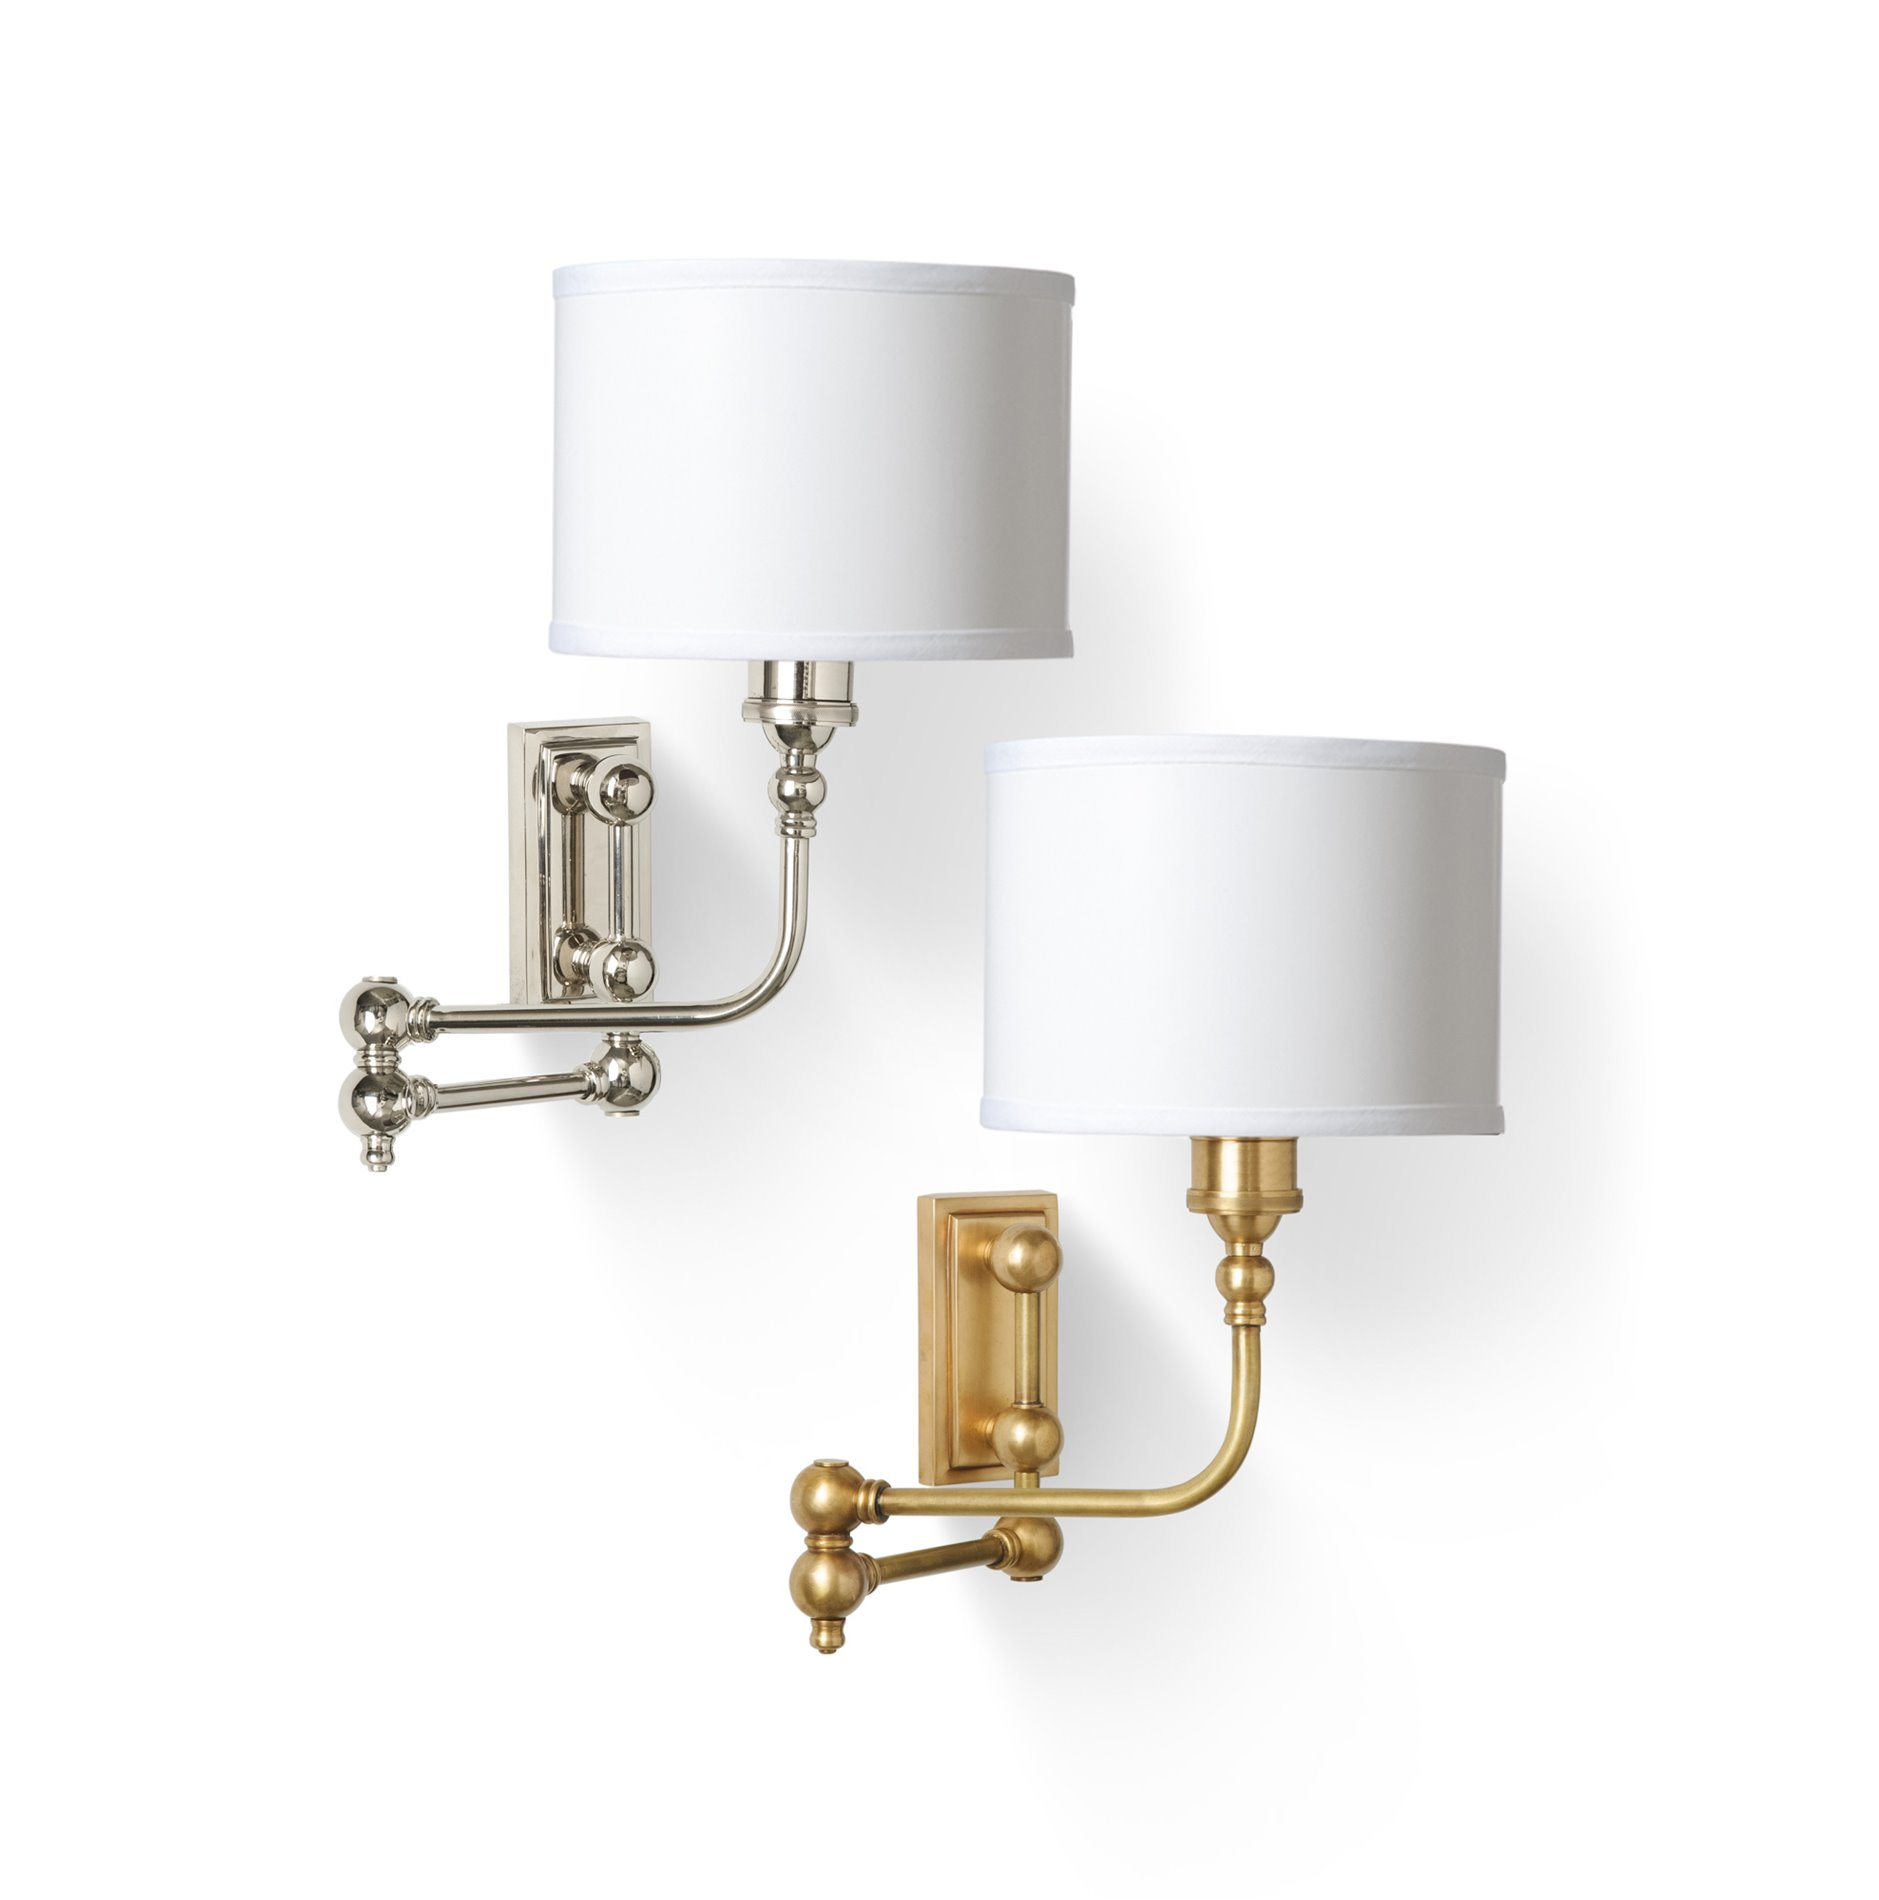 Barbara Cosgrove BC909 Swing Arm Wall Sconce in Antique Brass Finish BCG-BC909